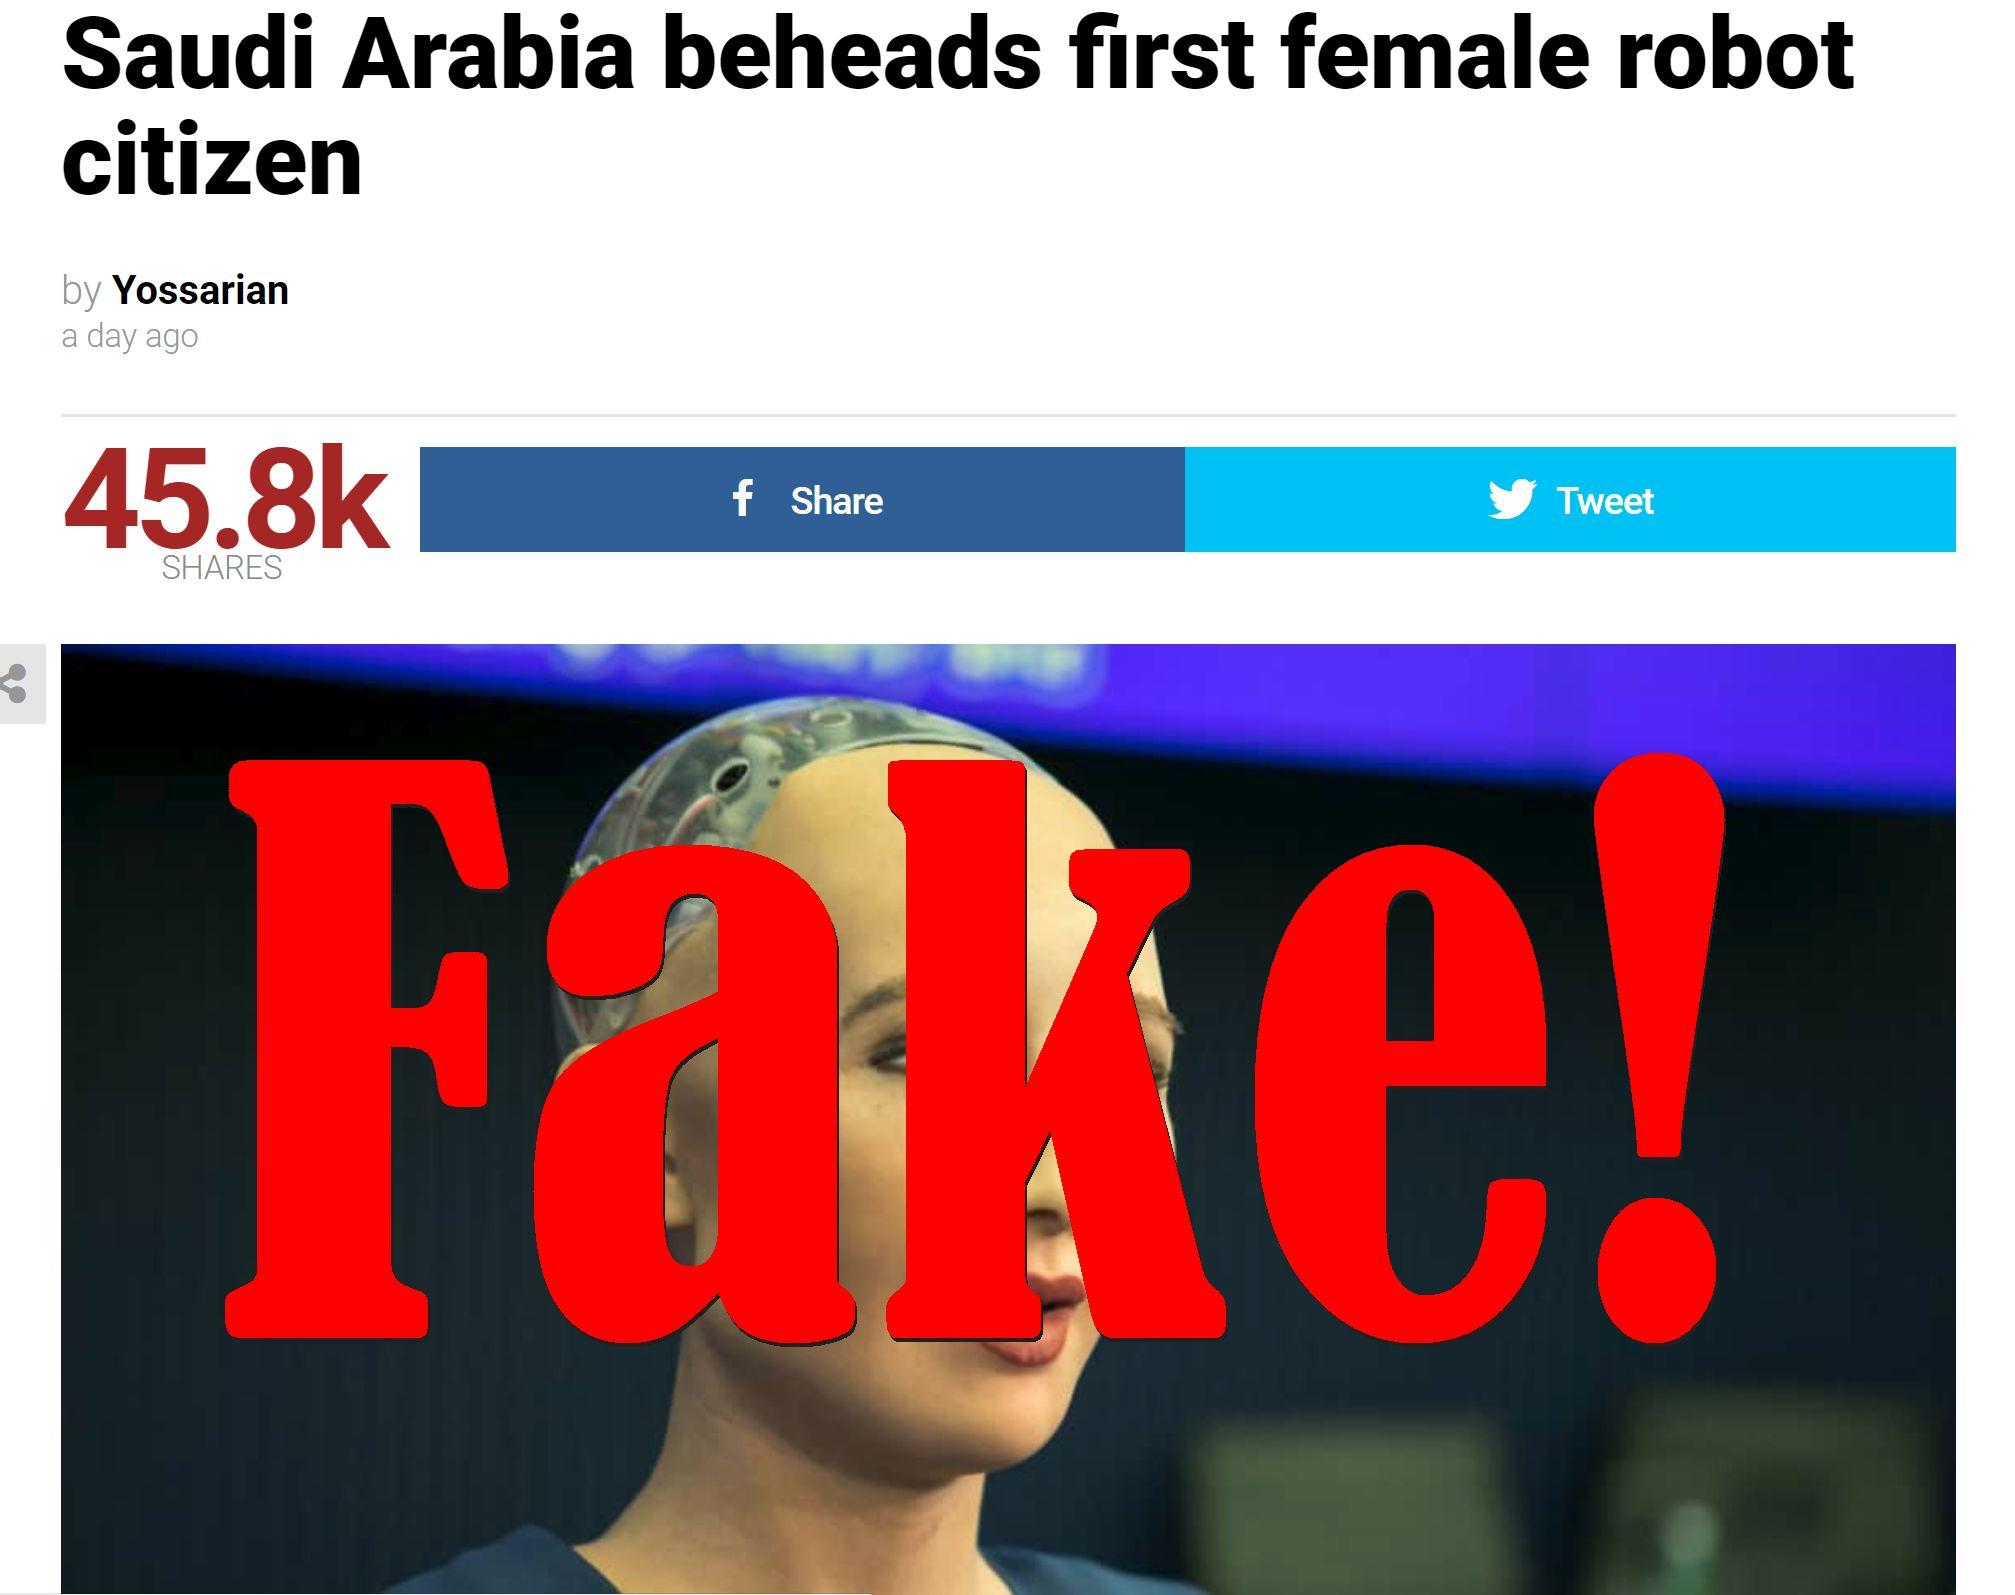 Fake News: Saudi Arabia Did NOT Behead First Female Robot Citizen